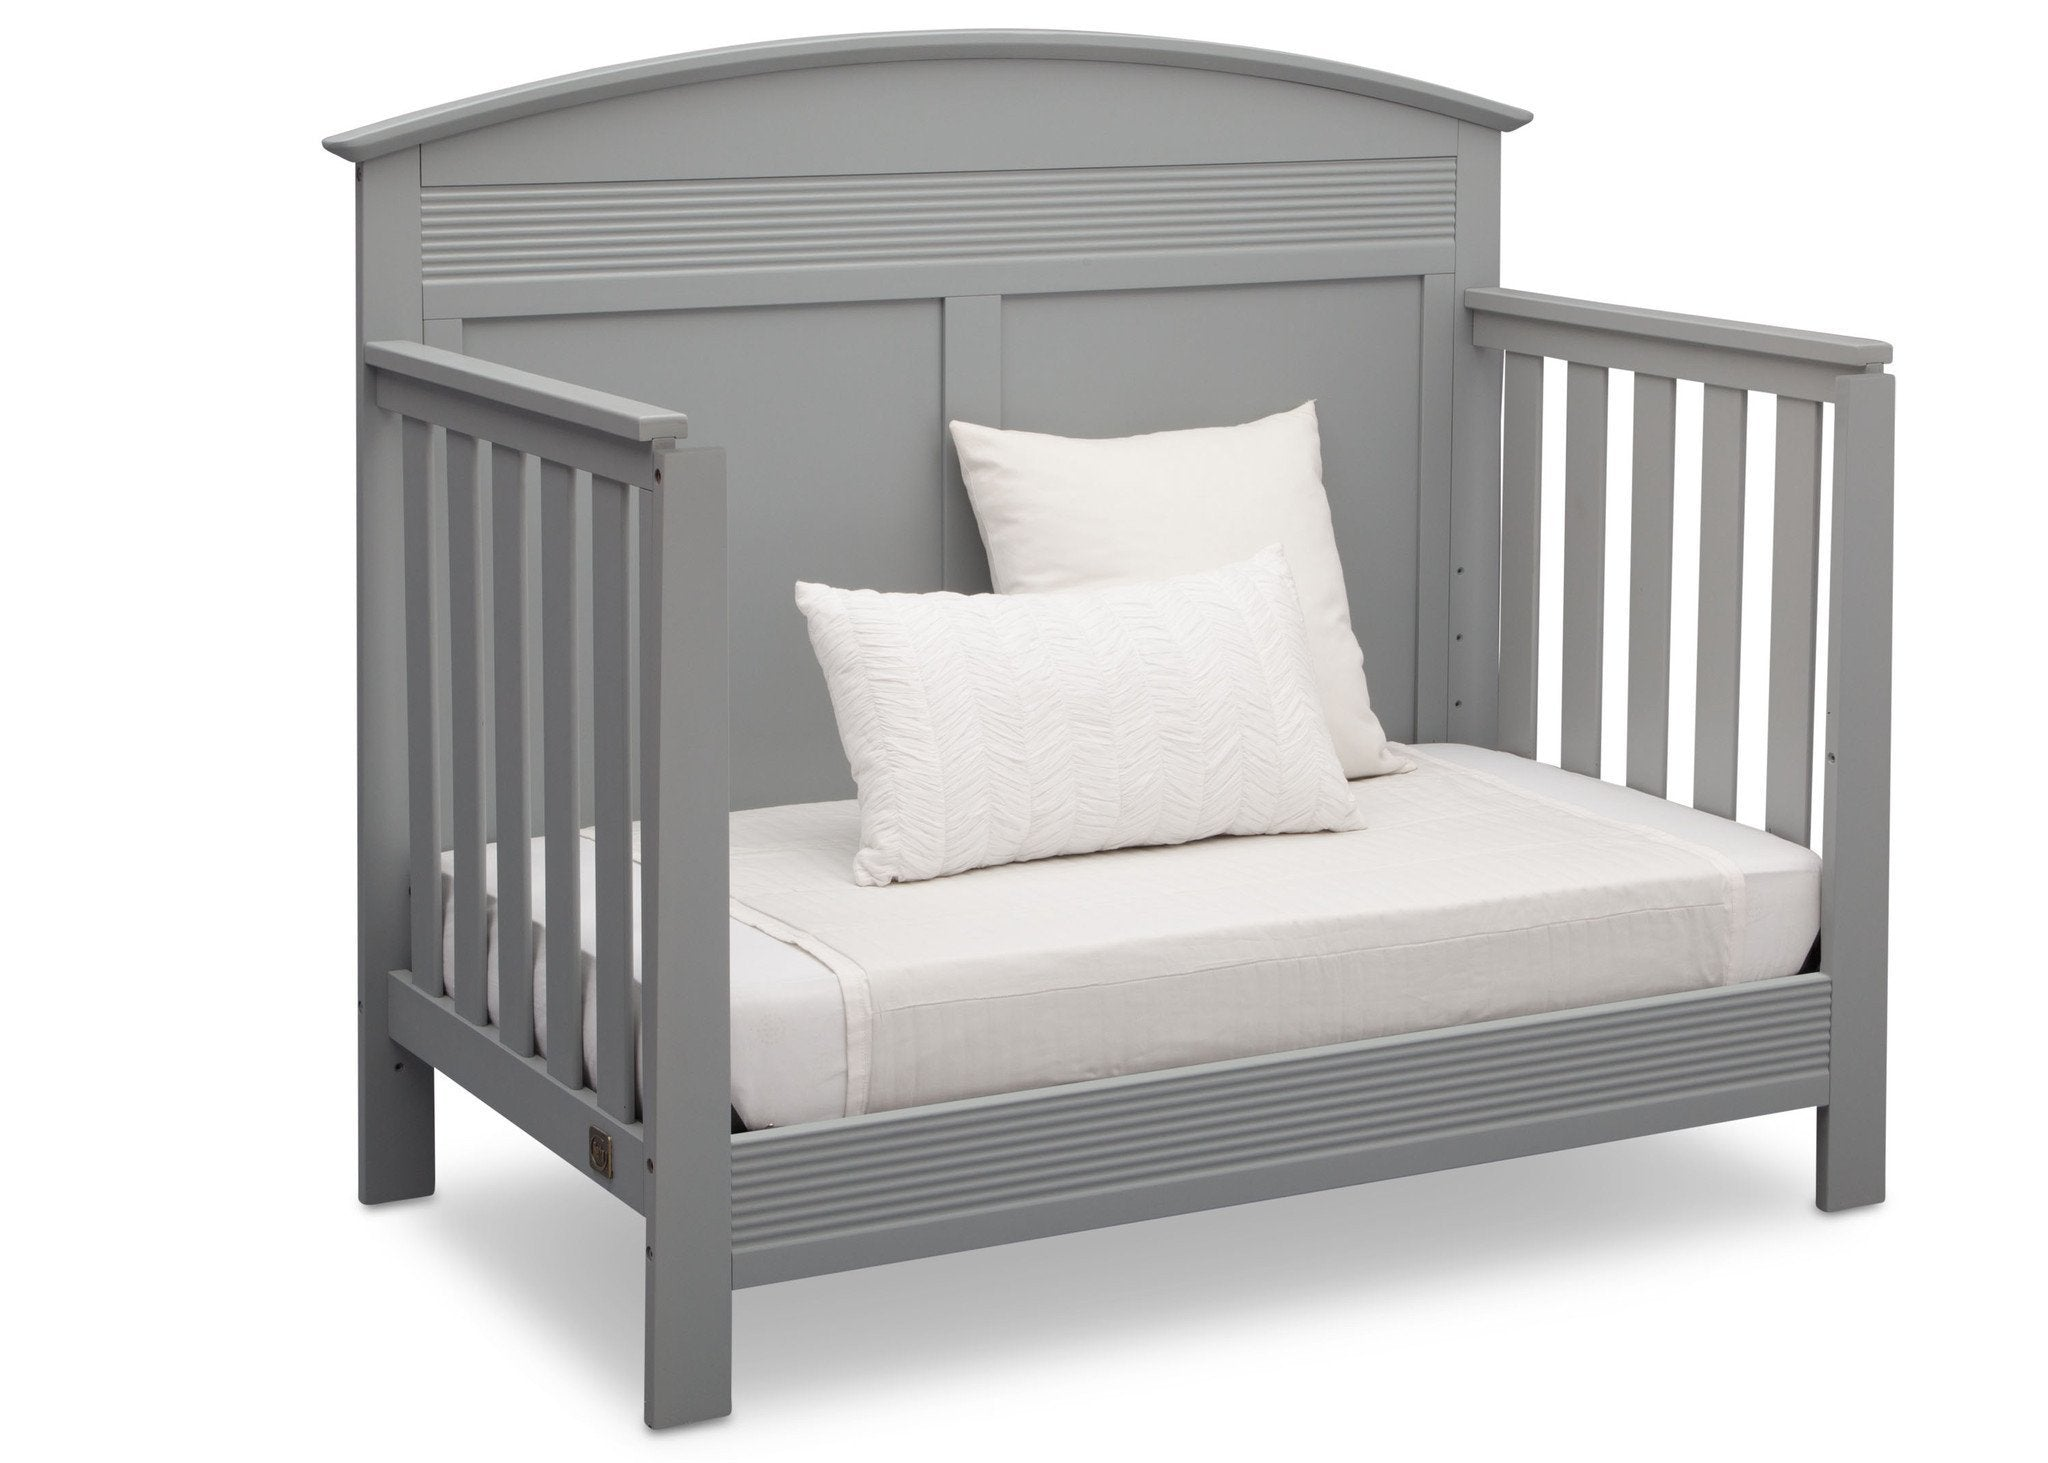 Serta Grey (026) Ashland 4-in-1 Convertible Crib, Right Daybed View a4a